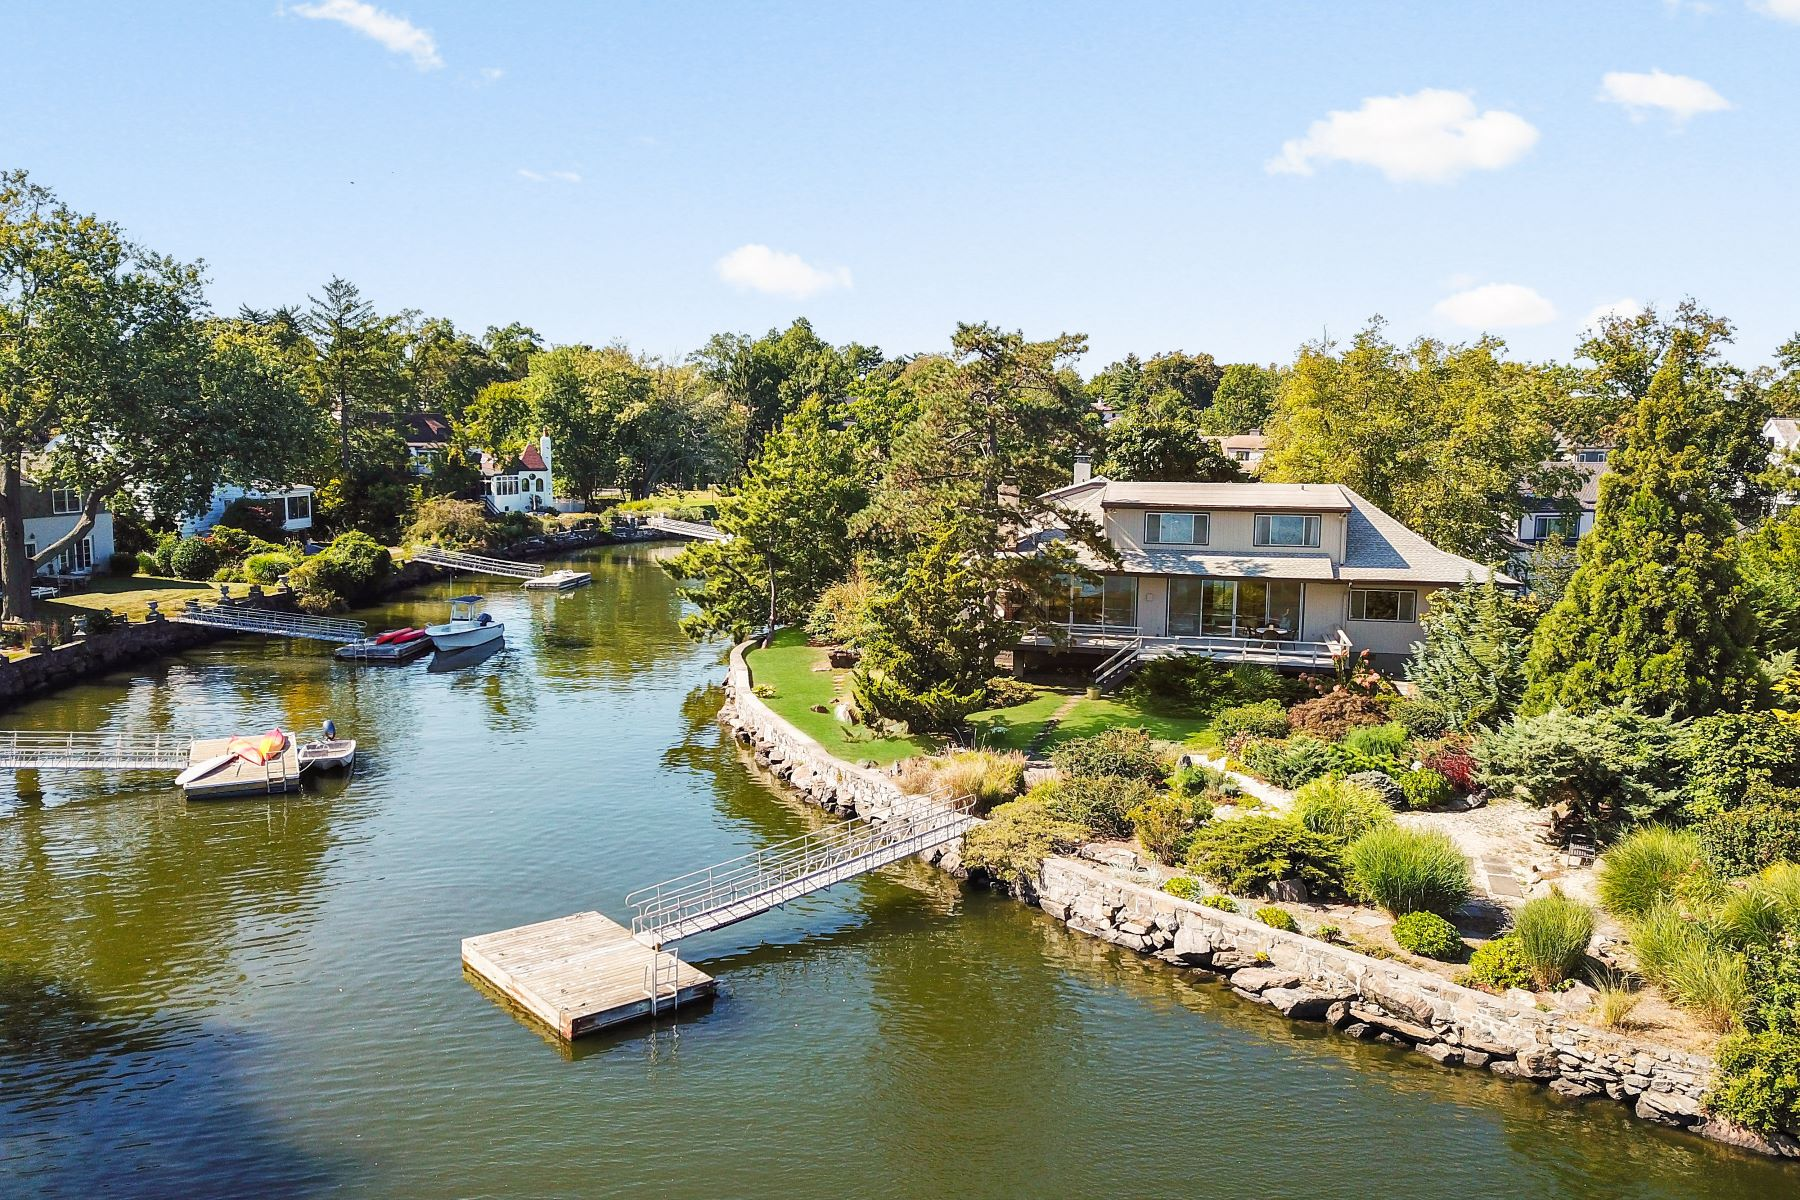 Single Family Homes for Sale at 1 Spanish Cove Road 1 Spanish Cove Rd Larchmont, New York 10538 United States